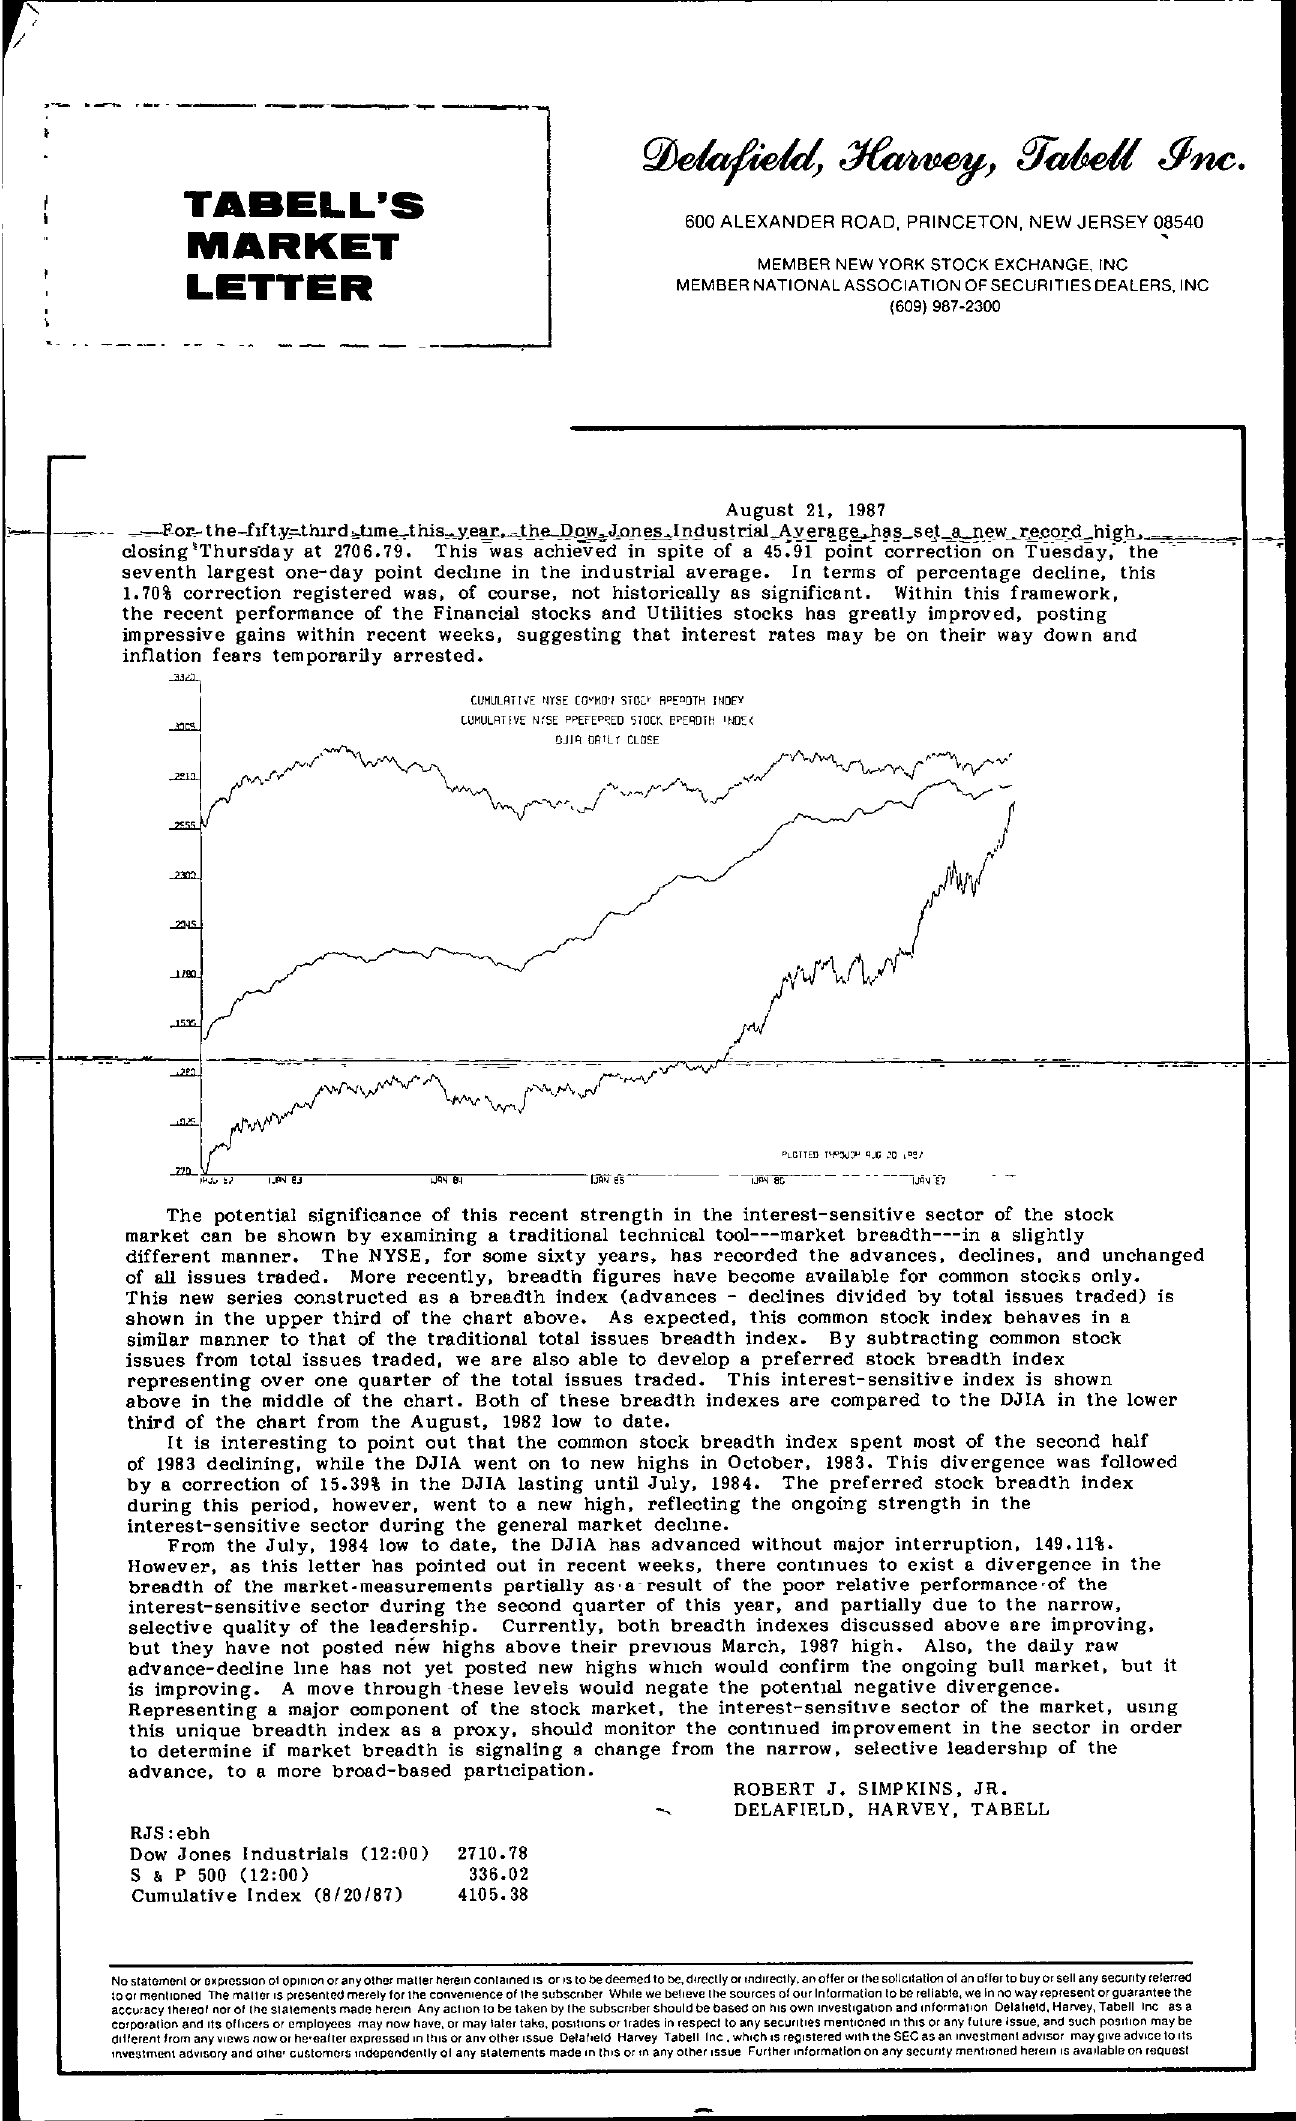 Tabell's Market Letter - August 21, 1987